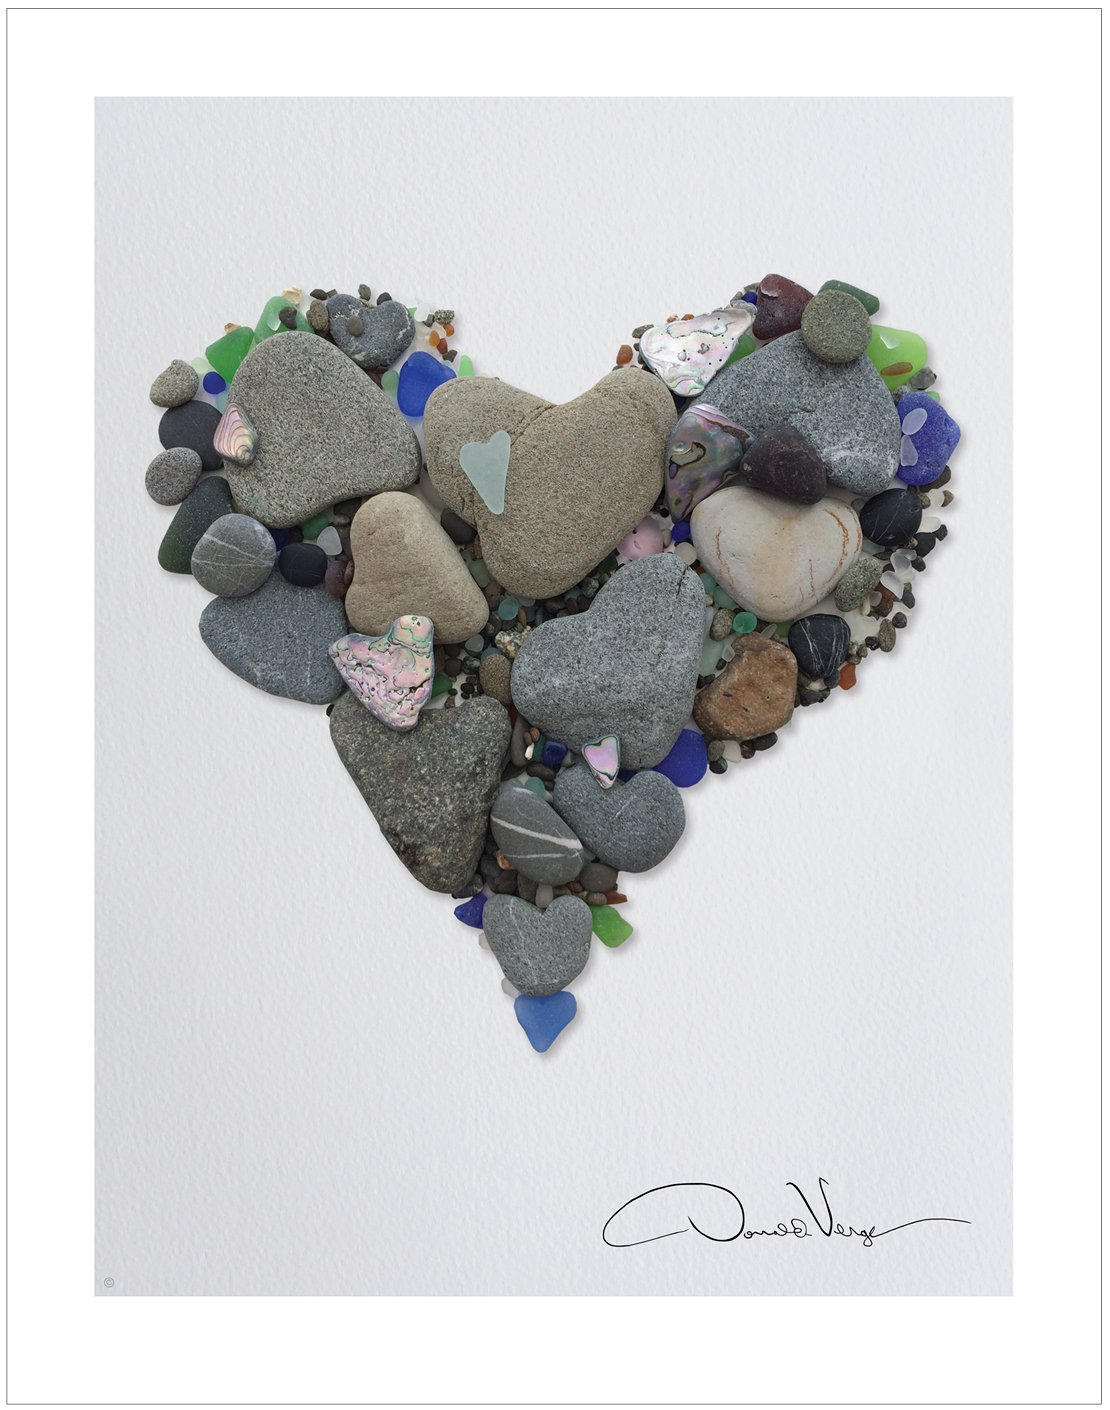 Love- Heart Stones & Sea Glass Heart Poster Print. 11x14 Great for Framing. Best Quality Gift from The Heart Collection. Unique Birthday, Christmas & Valentines Day Gifts for Kids, Women & Men - Romantic Valentine's Day gifts & Easter Gift or Card. Stunning sea glass A good present school, students, teachers, classrooms, college dorms, aunts, uncles, nieces, nephews and children's room. As well as for home & beach décor, especially nice for kitchen, bedroom, and living rooms. Great 2016 Christmas gifts for couples, co-workers, young adults and kids. Chic elegant gifts for grandpa and Dad. Popular Easter basket stuffer gift idea and alternative for toys & games. Terrific for graduates and graduation! Made in the USA. Maine. A most unique Father's Day gift from daughter wife or son. - wall-art, living-room-decor, living-room - 714sXxoQHaL -